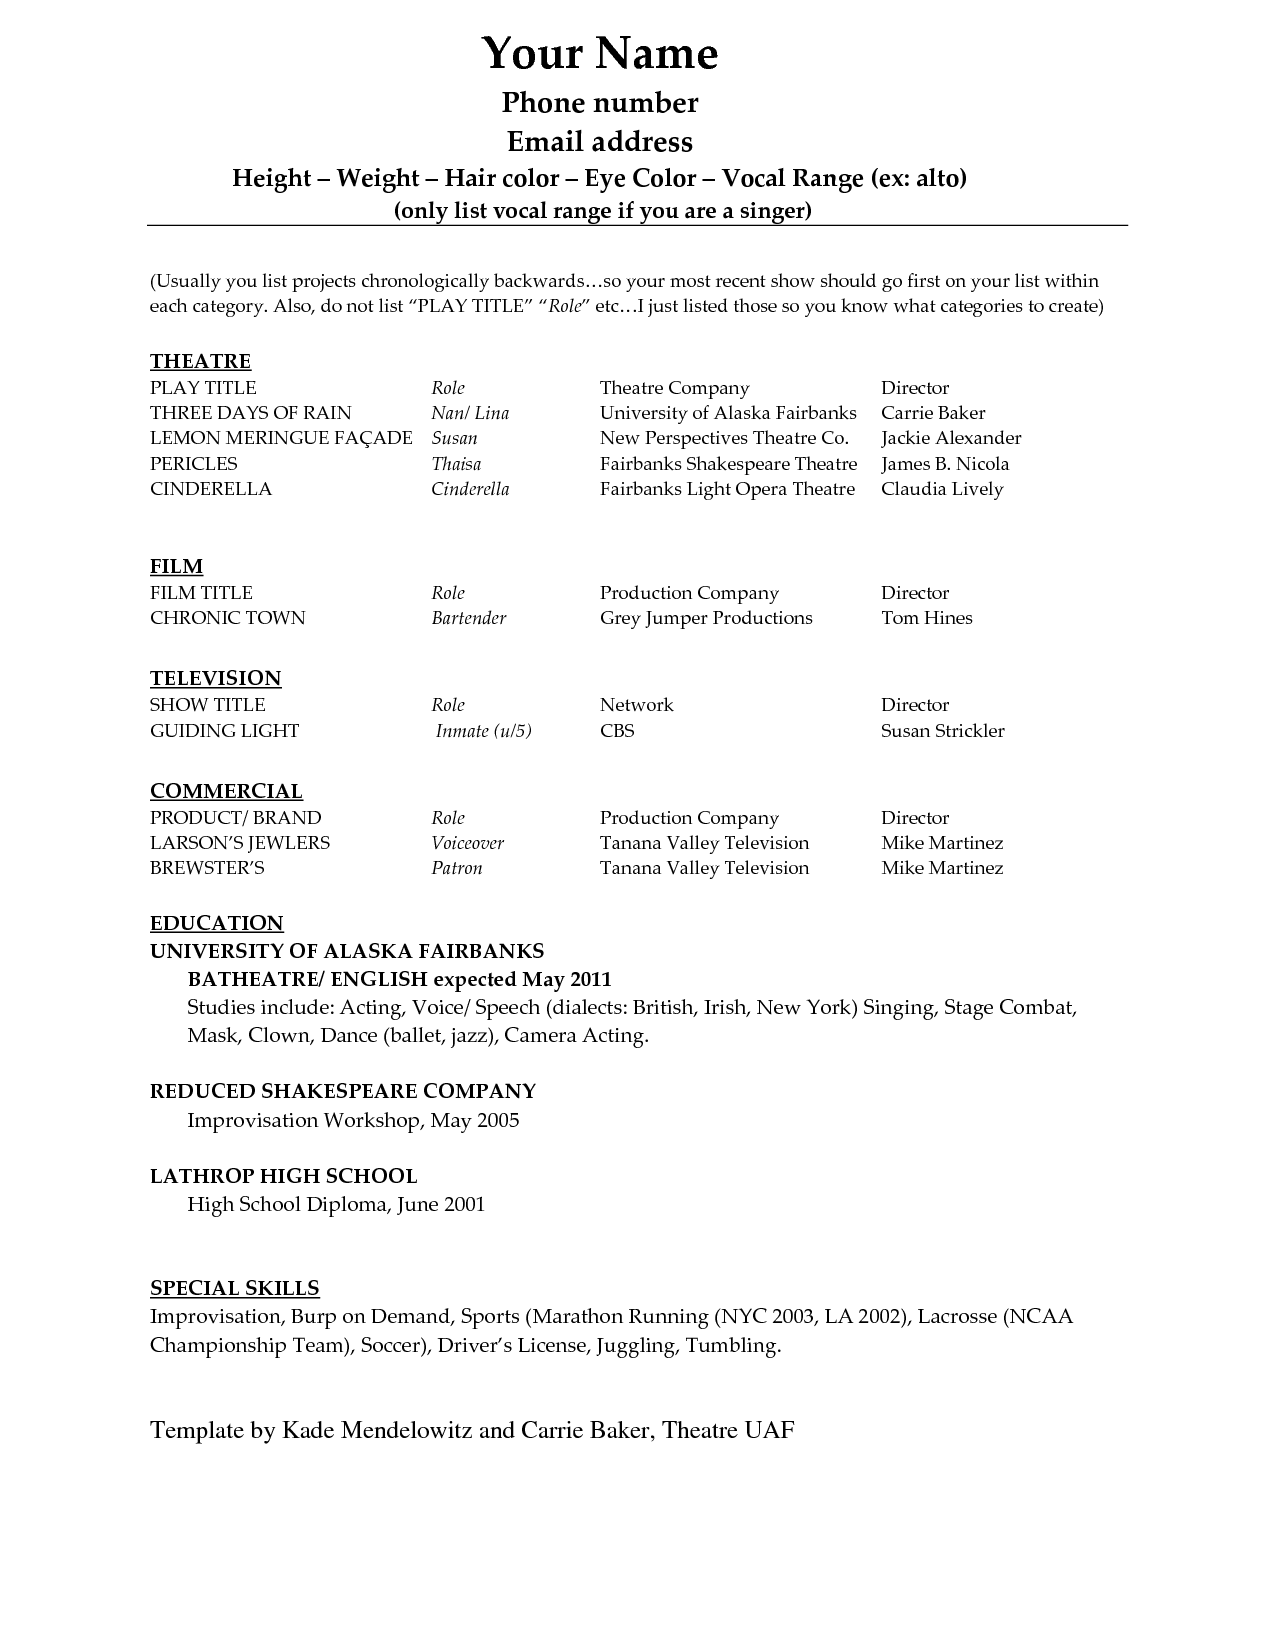 Acting resume template download free httpresumecareer resume best format resume templates for dance teachers sample resume amp templates yelopaper Images